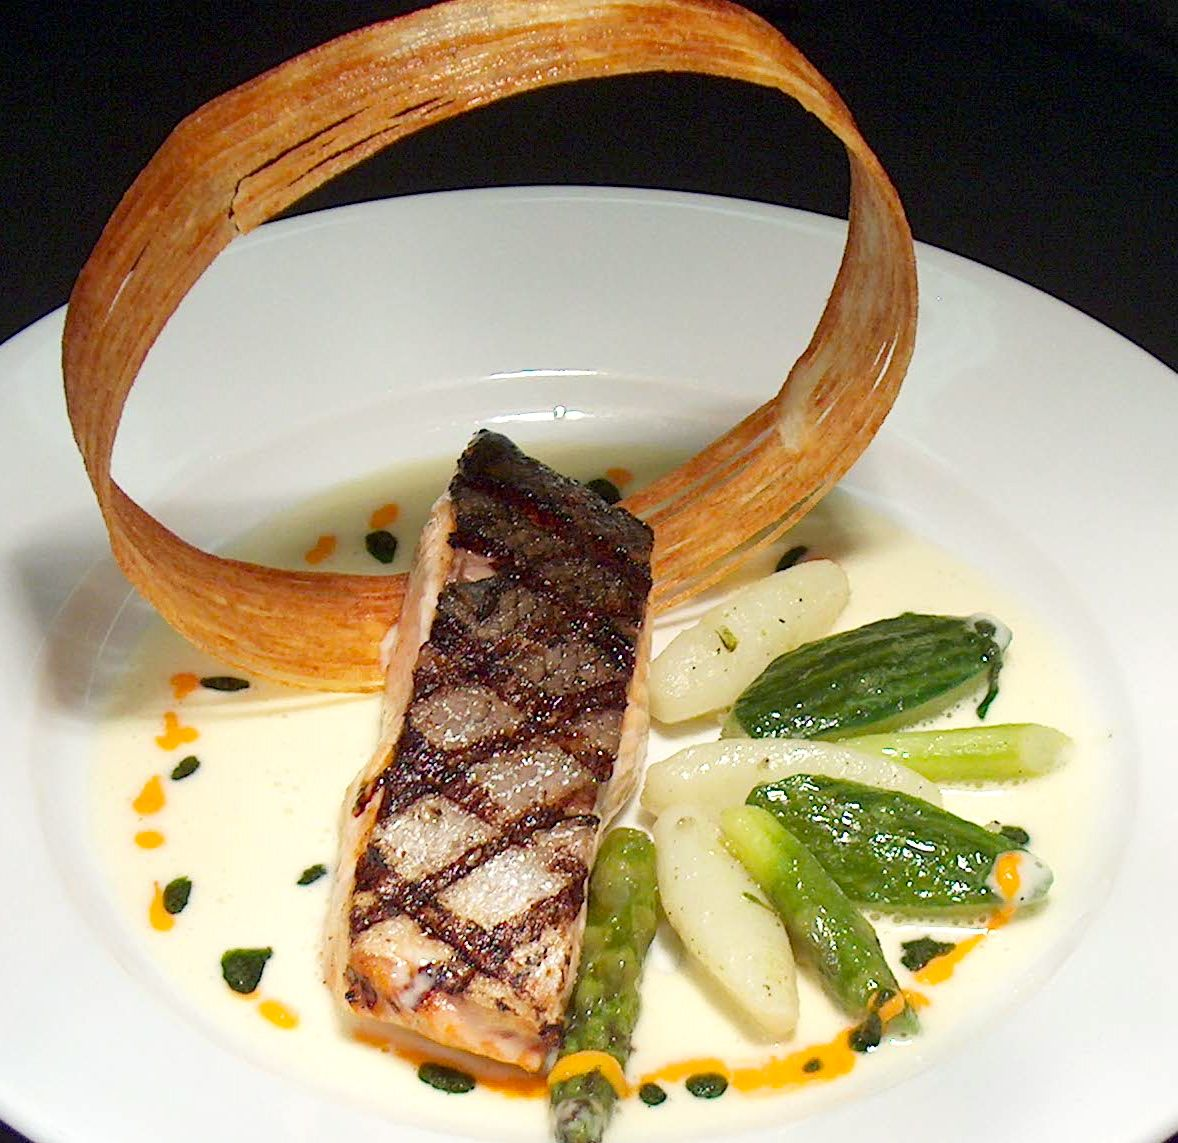 Food Plating Idea. Grilled Salmon with a Potato Ring